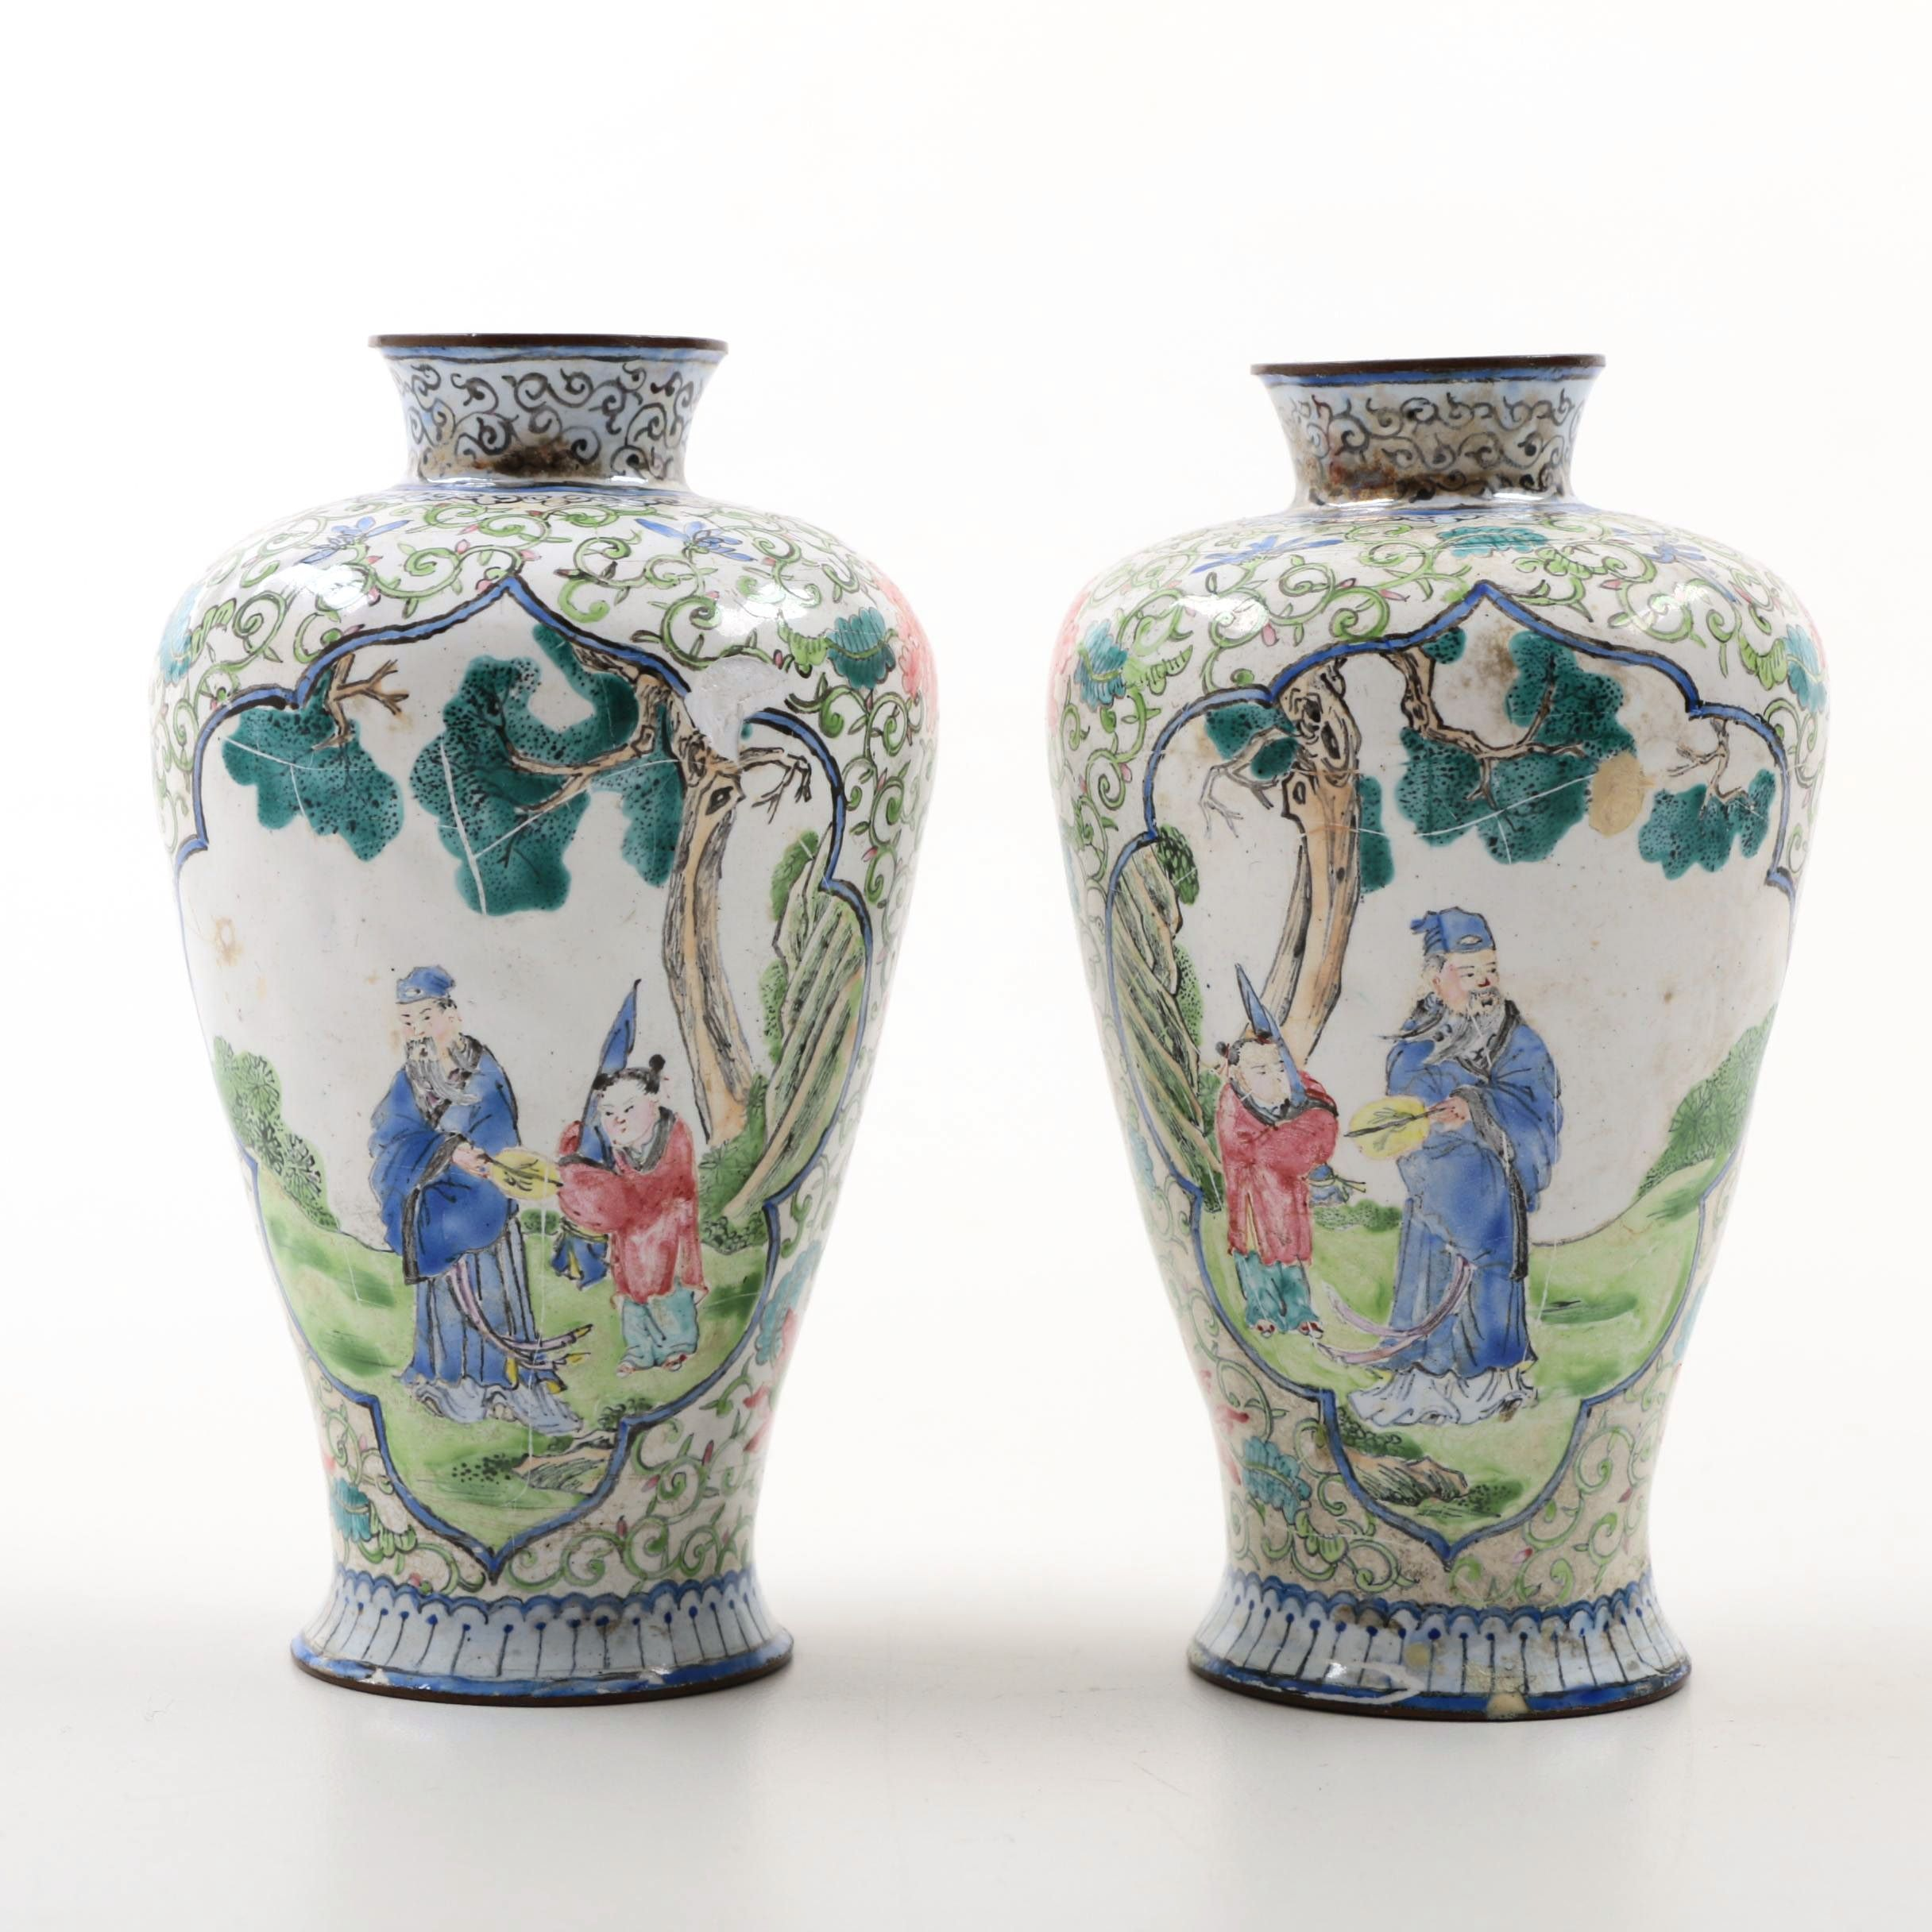 19th Century Chinese Canton Enamel Miniature Vases